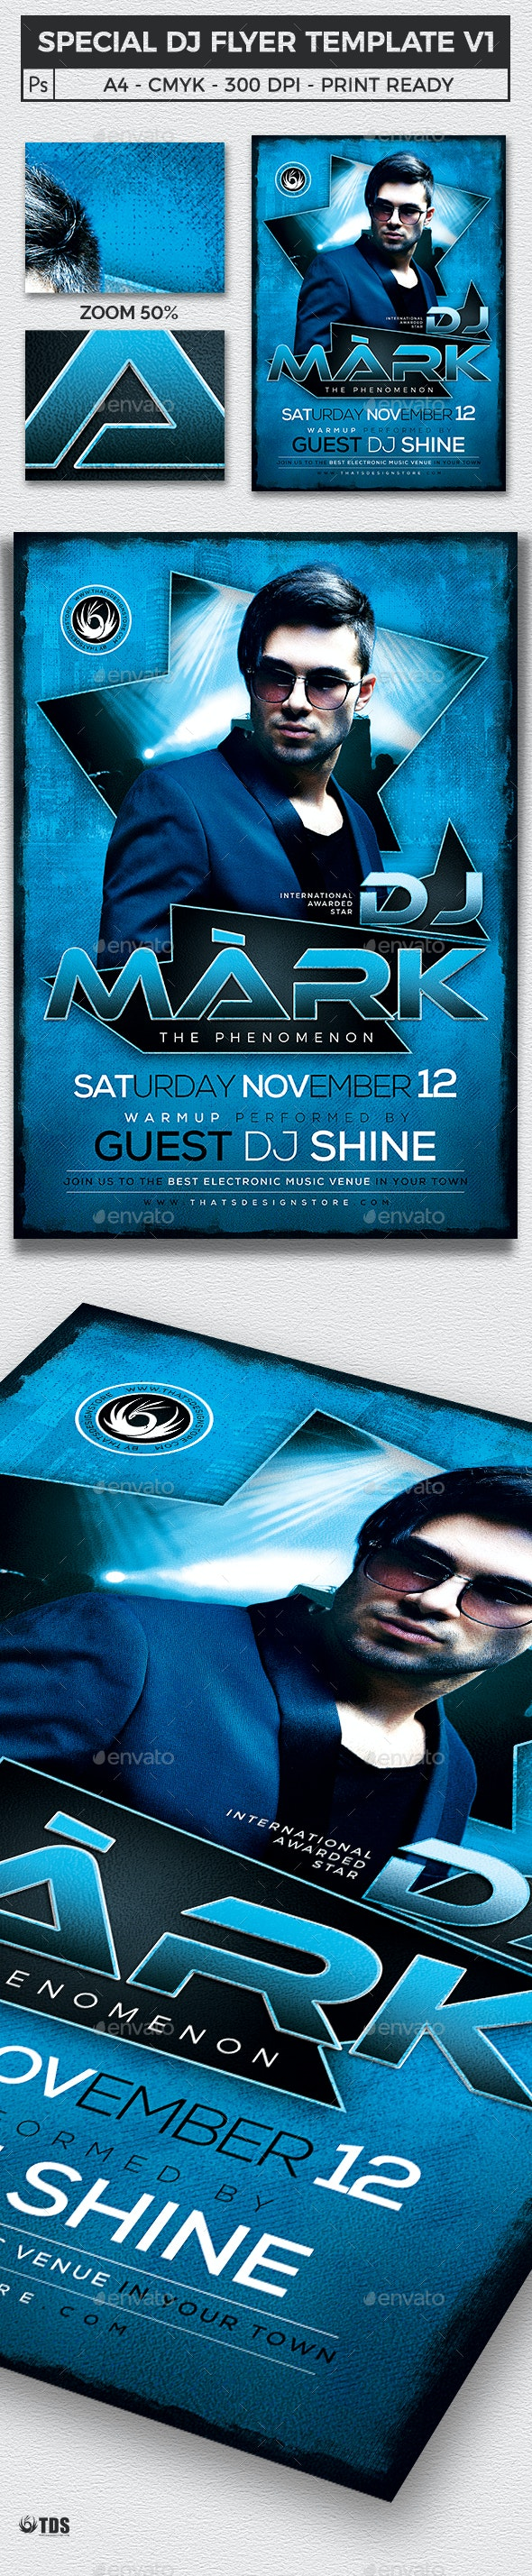 Special Dj Flyer Template V1 - Clubs & Parties Events